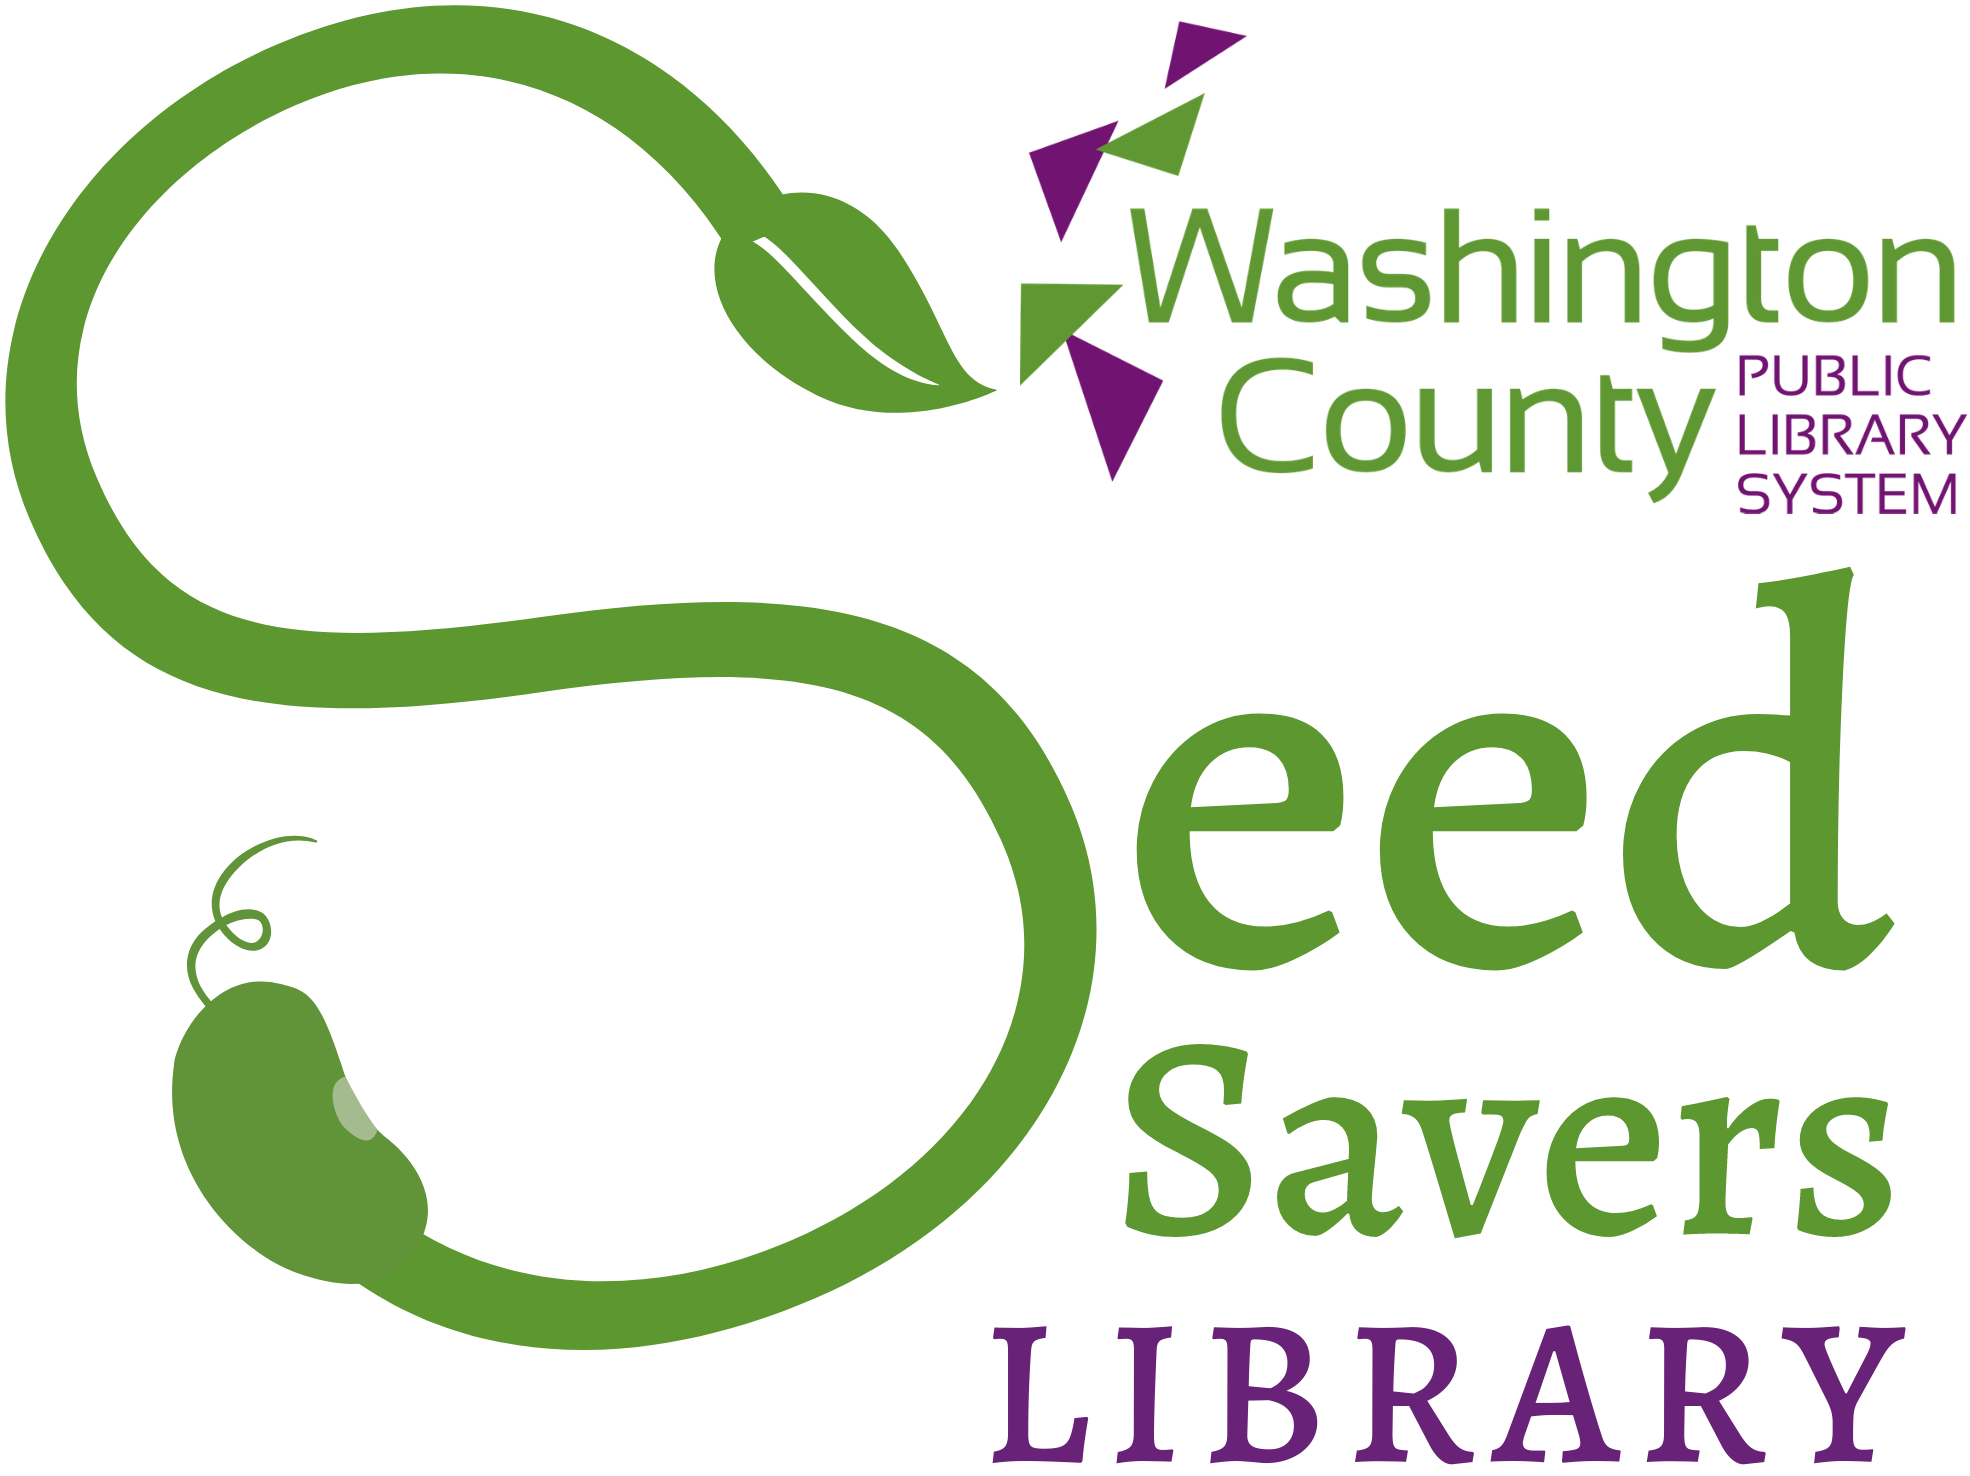 Washington County Public Library System Seed Savers Library